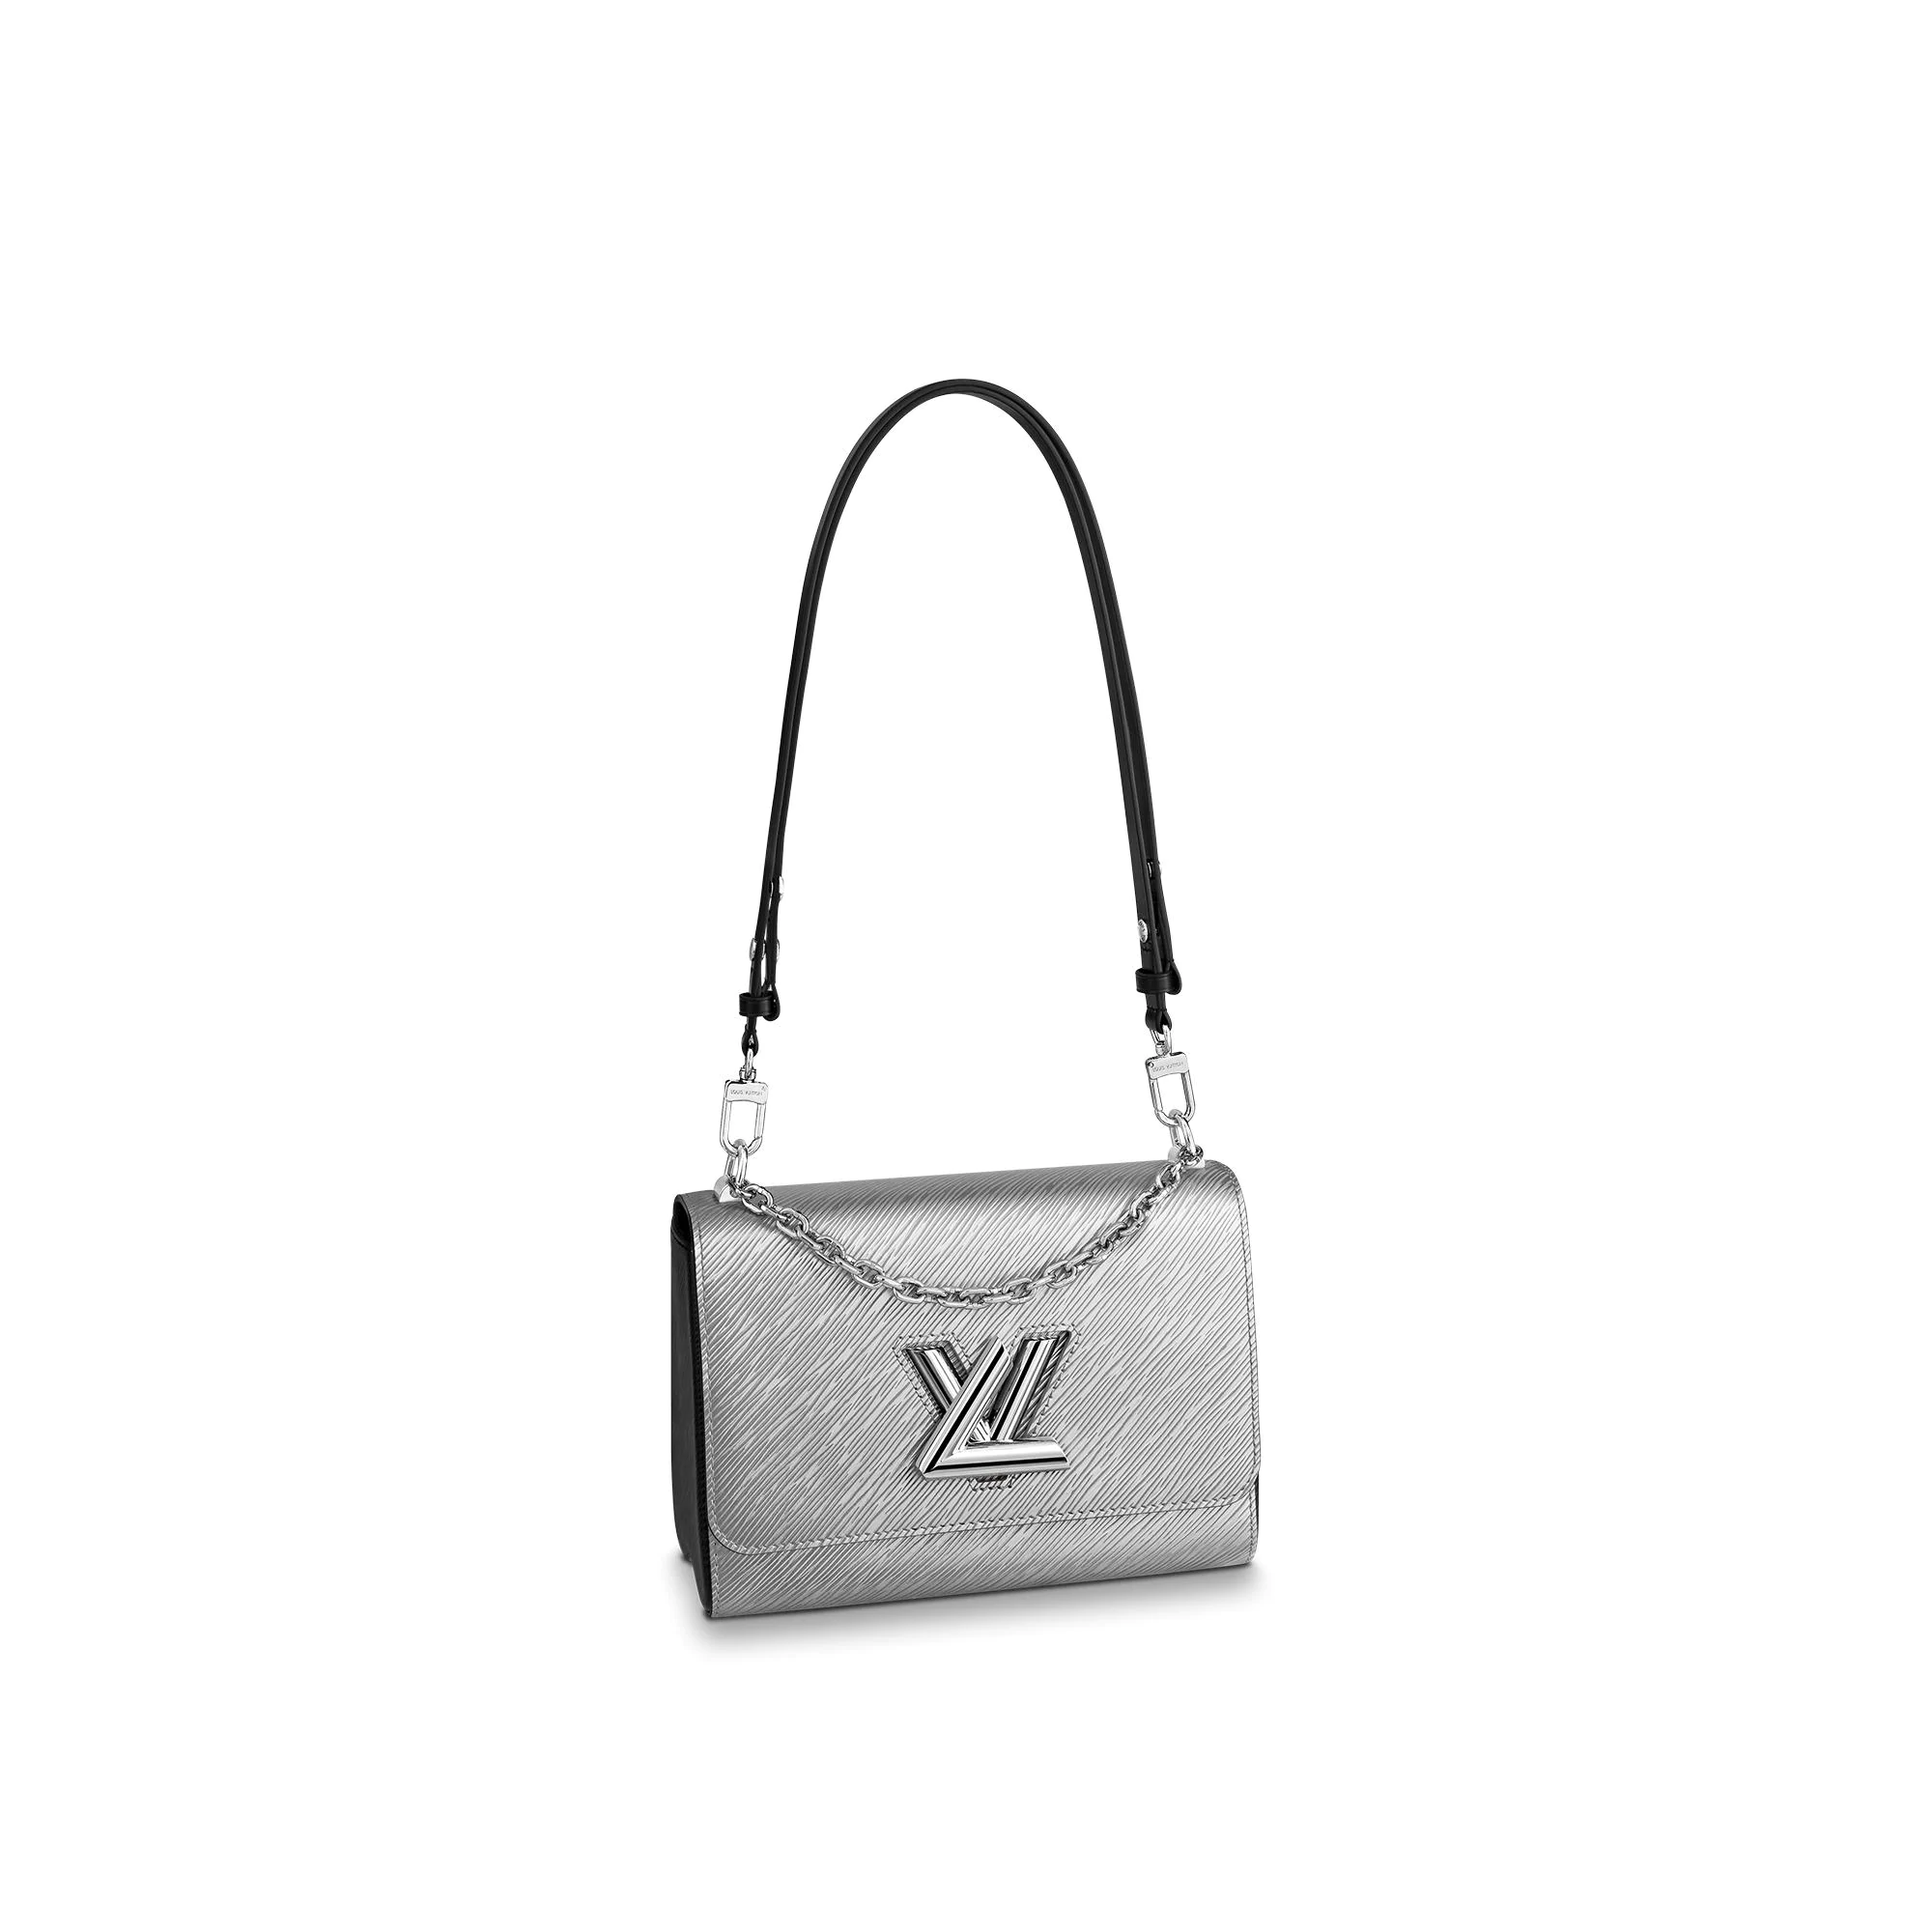 Louis Vuitton Twist MM Epi Leather Bag M55404 Silver